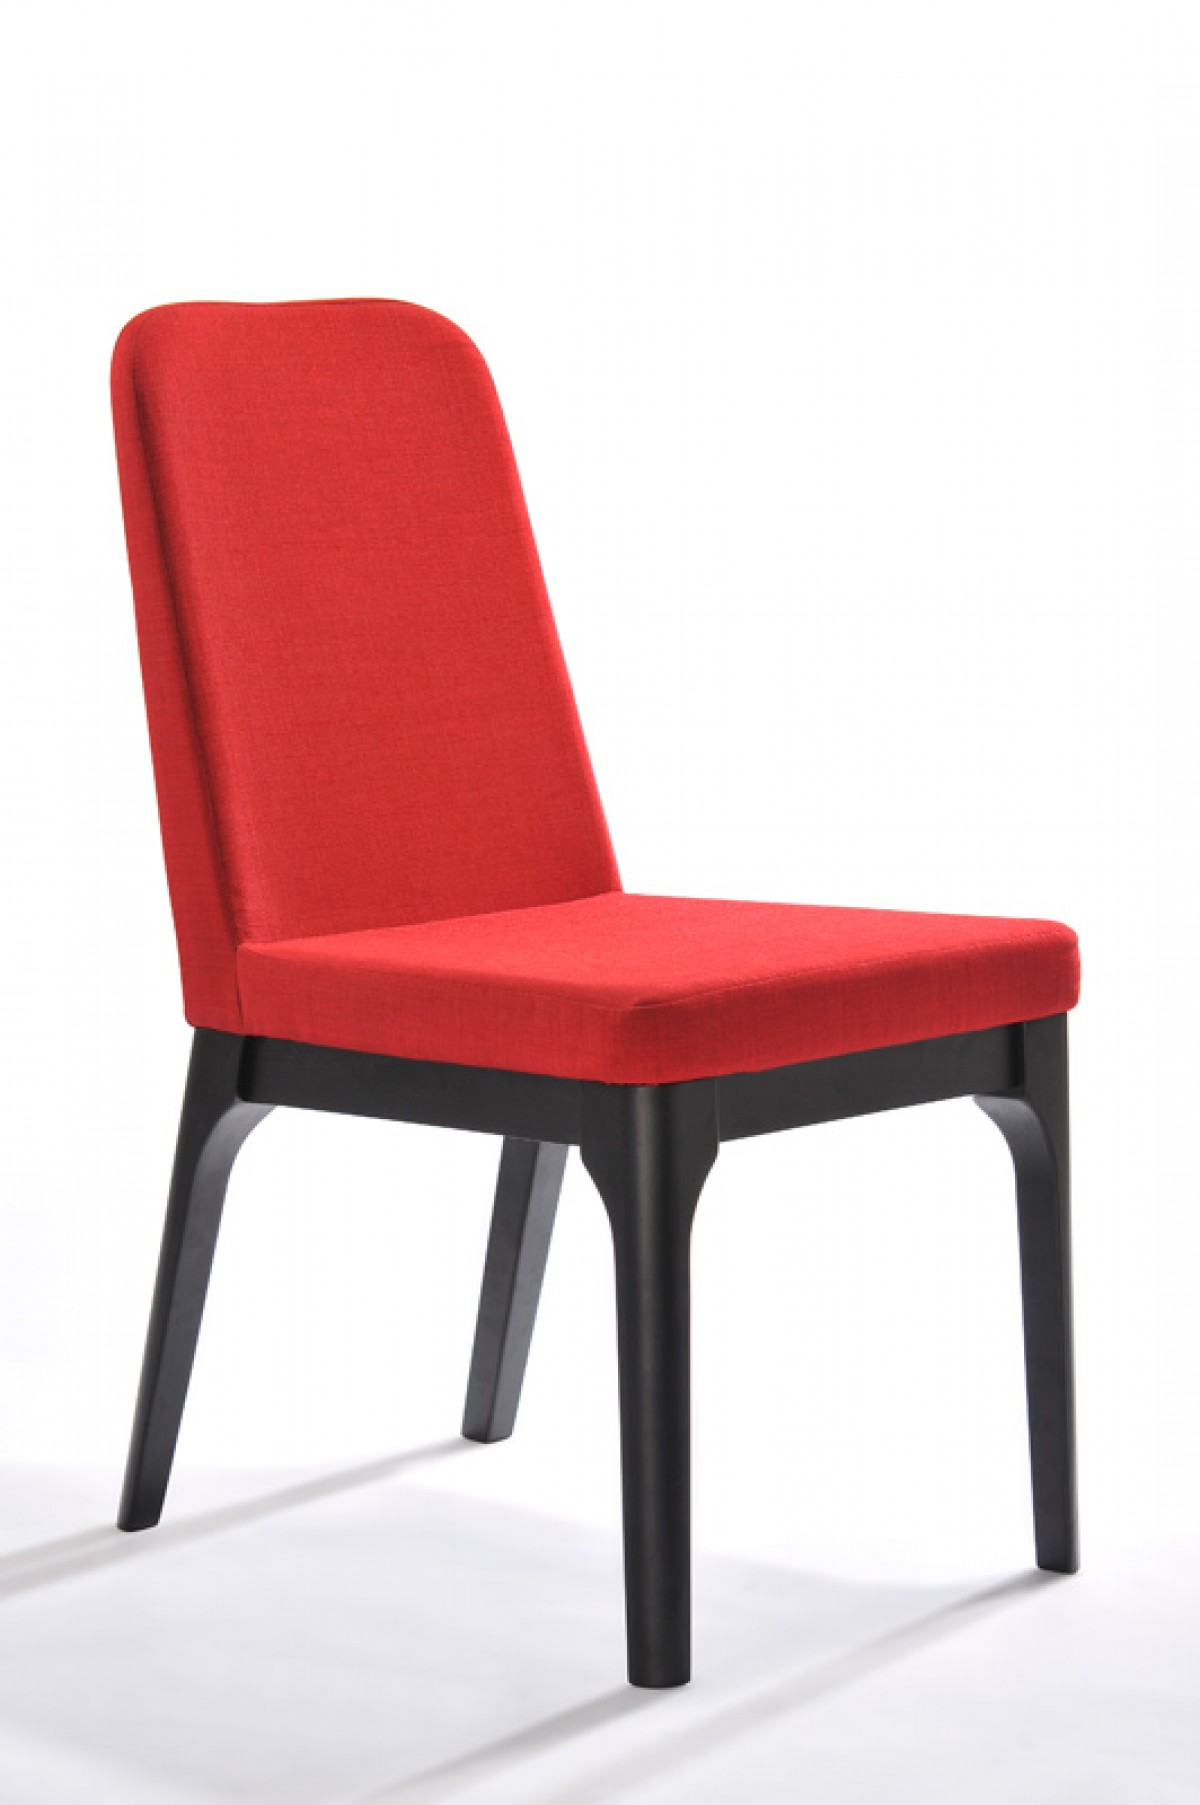 Modrest comet modern red fabric dining chair set of 2 for Red dining room chairs